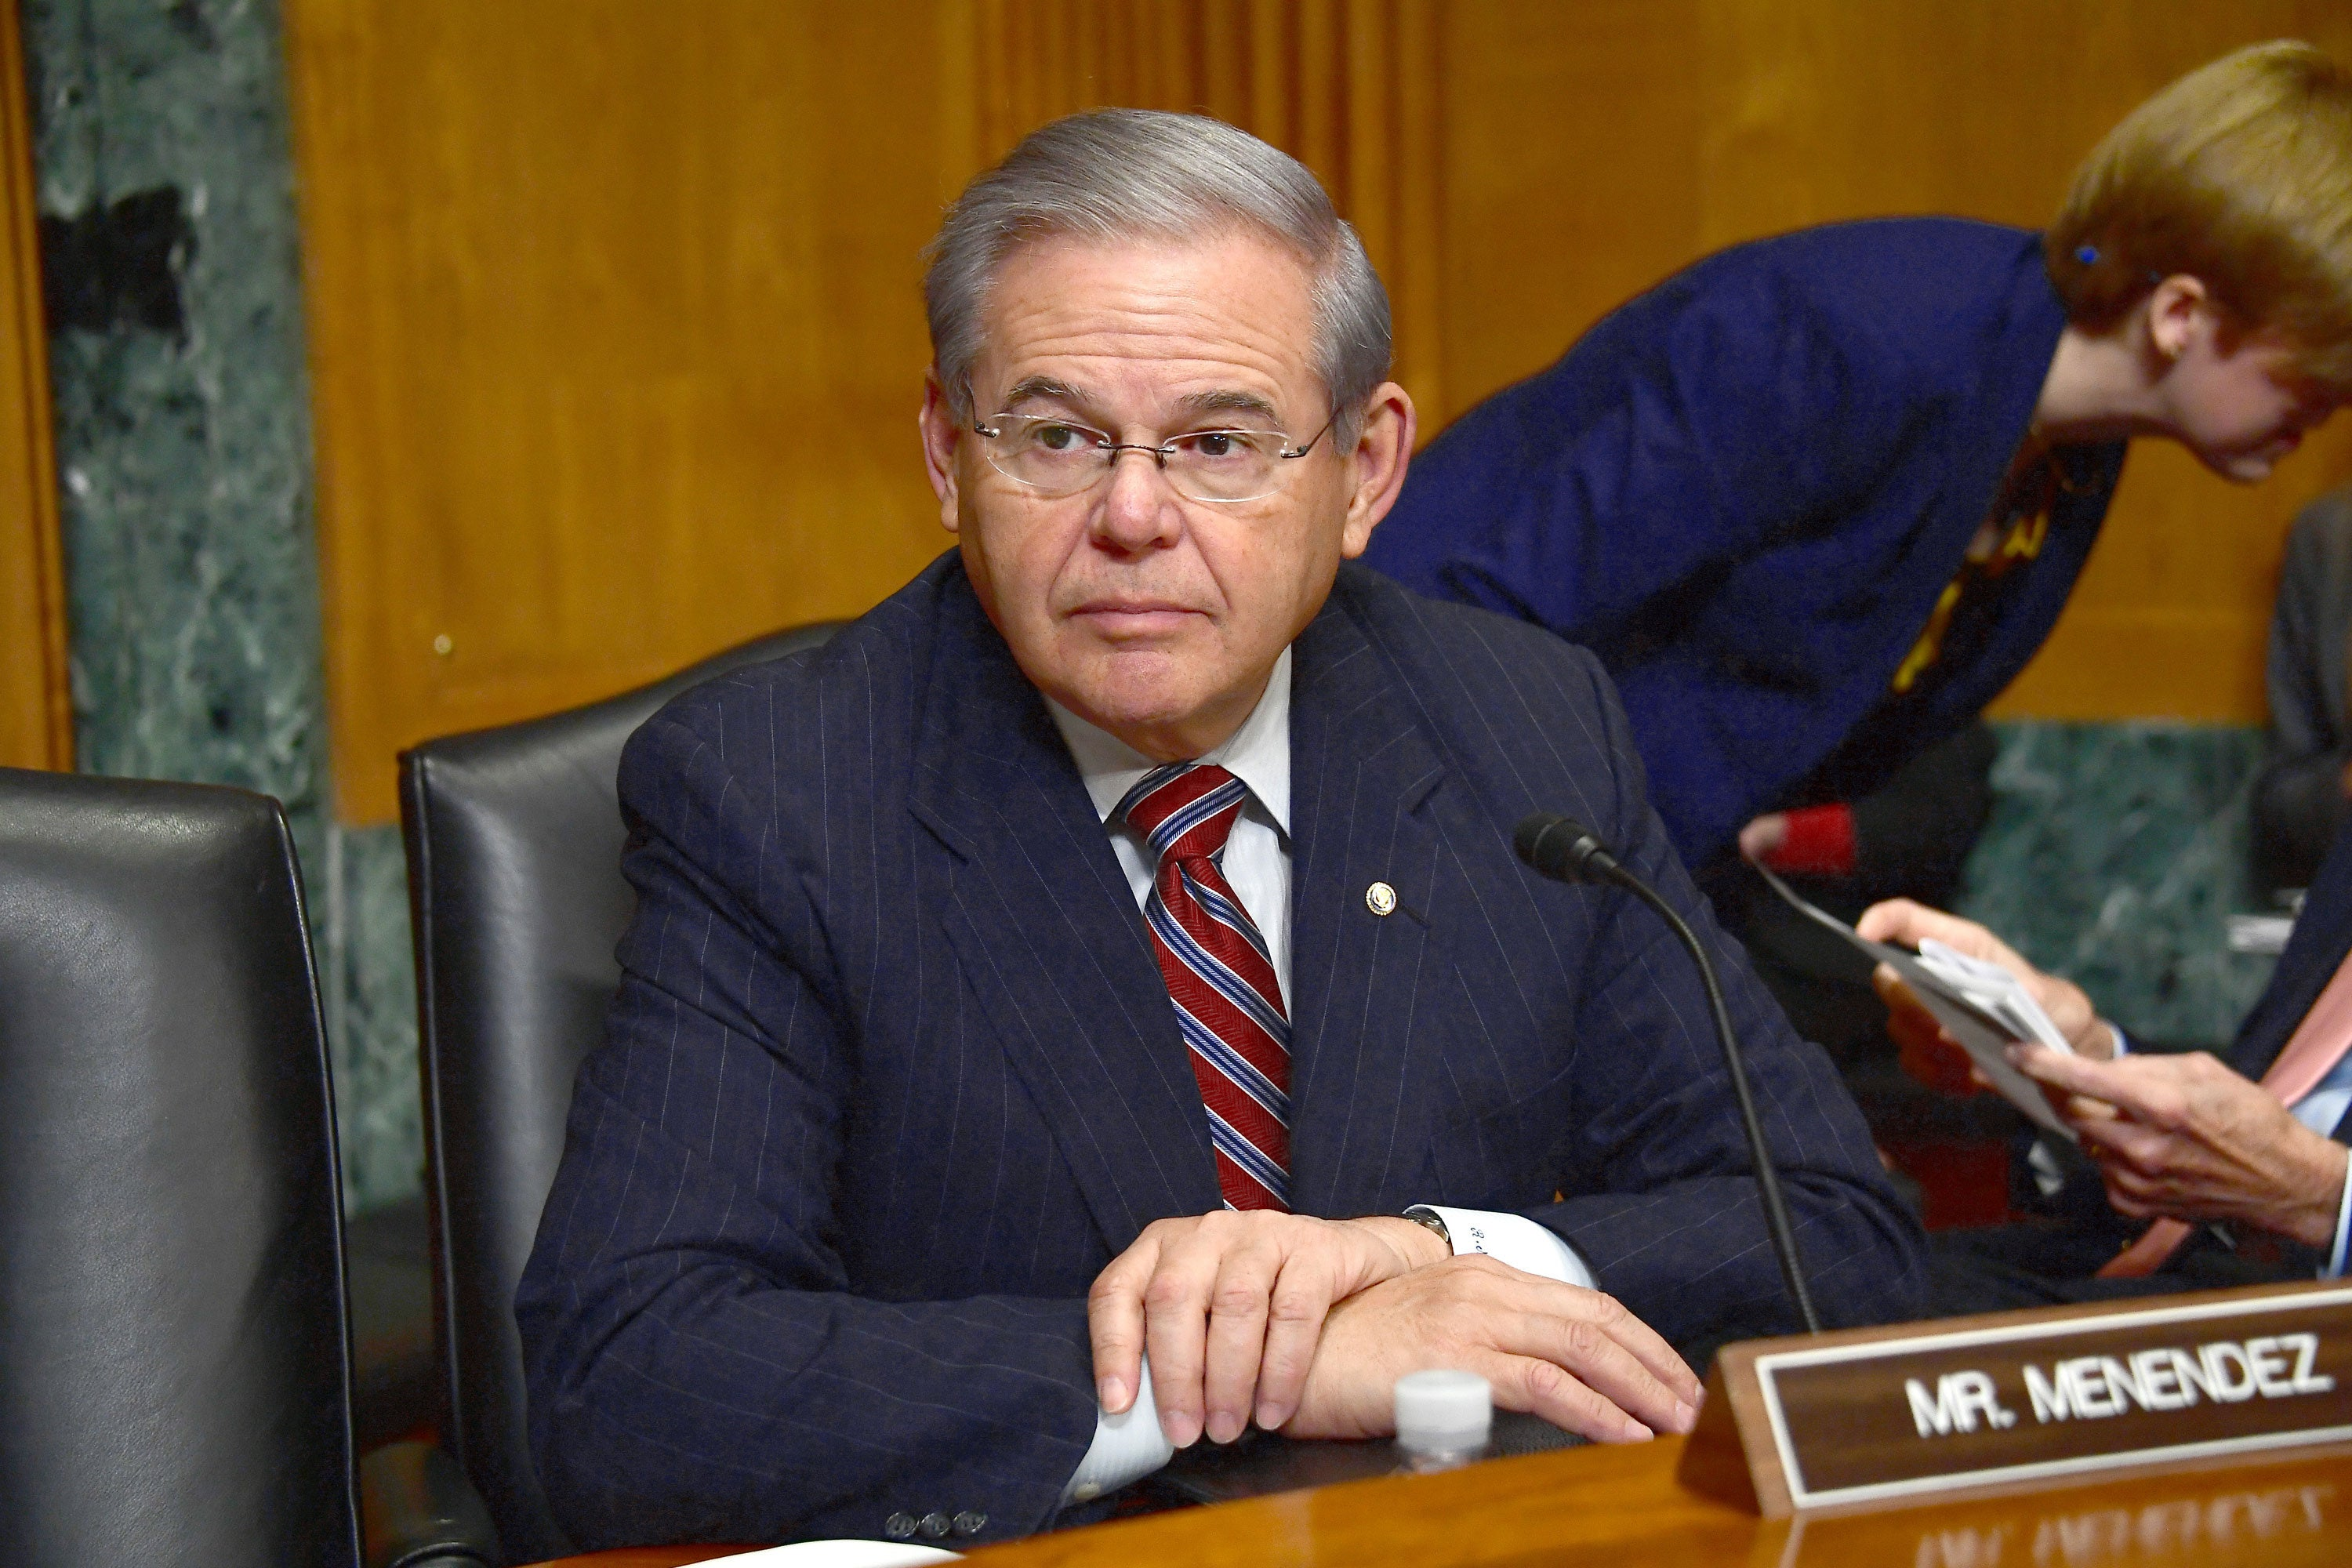 Sen. Robert Menendez, D-N.J., awaits the start of the confirmation hearing for Rep. Tom Price, R-Ga., before the Senate Committee on Finance, Jan. 24, 2017. (Photo: Ron Sachs/dpa/picture-alliance/Newscom)